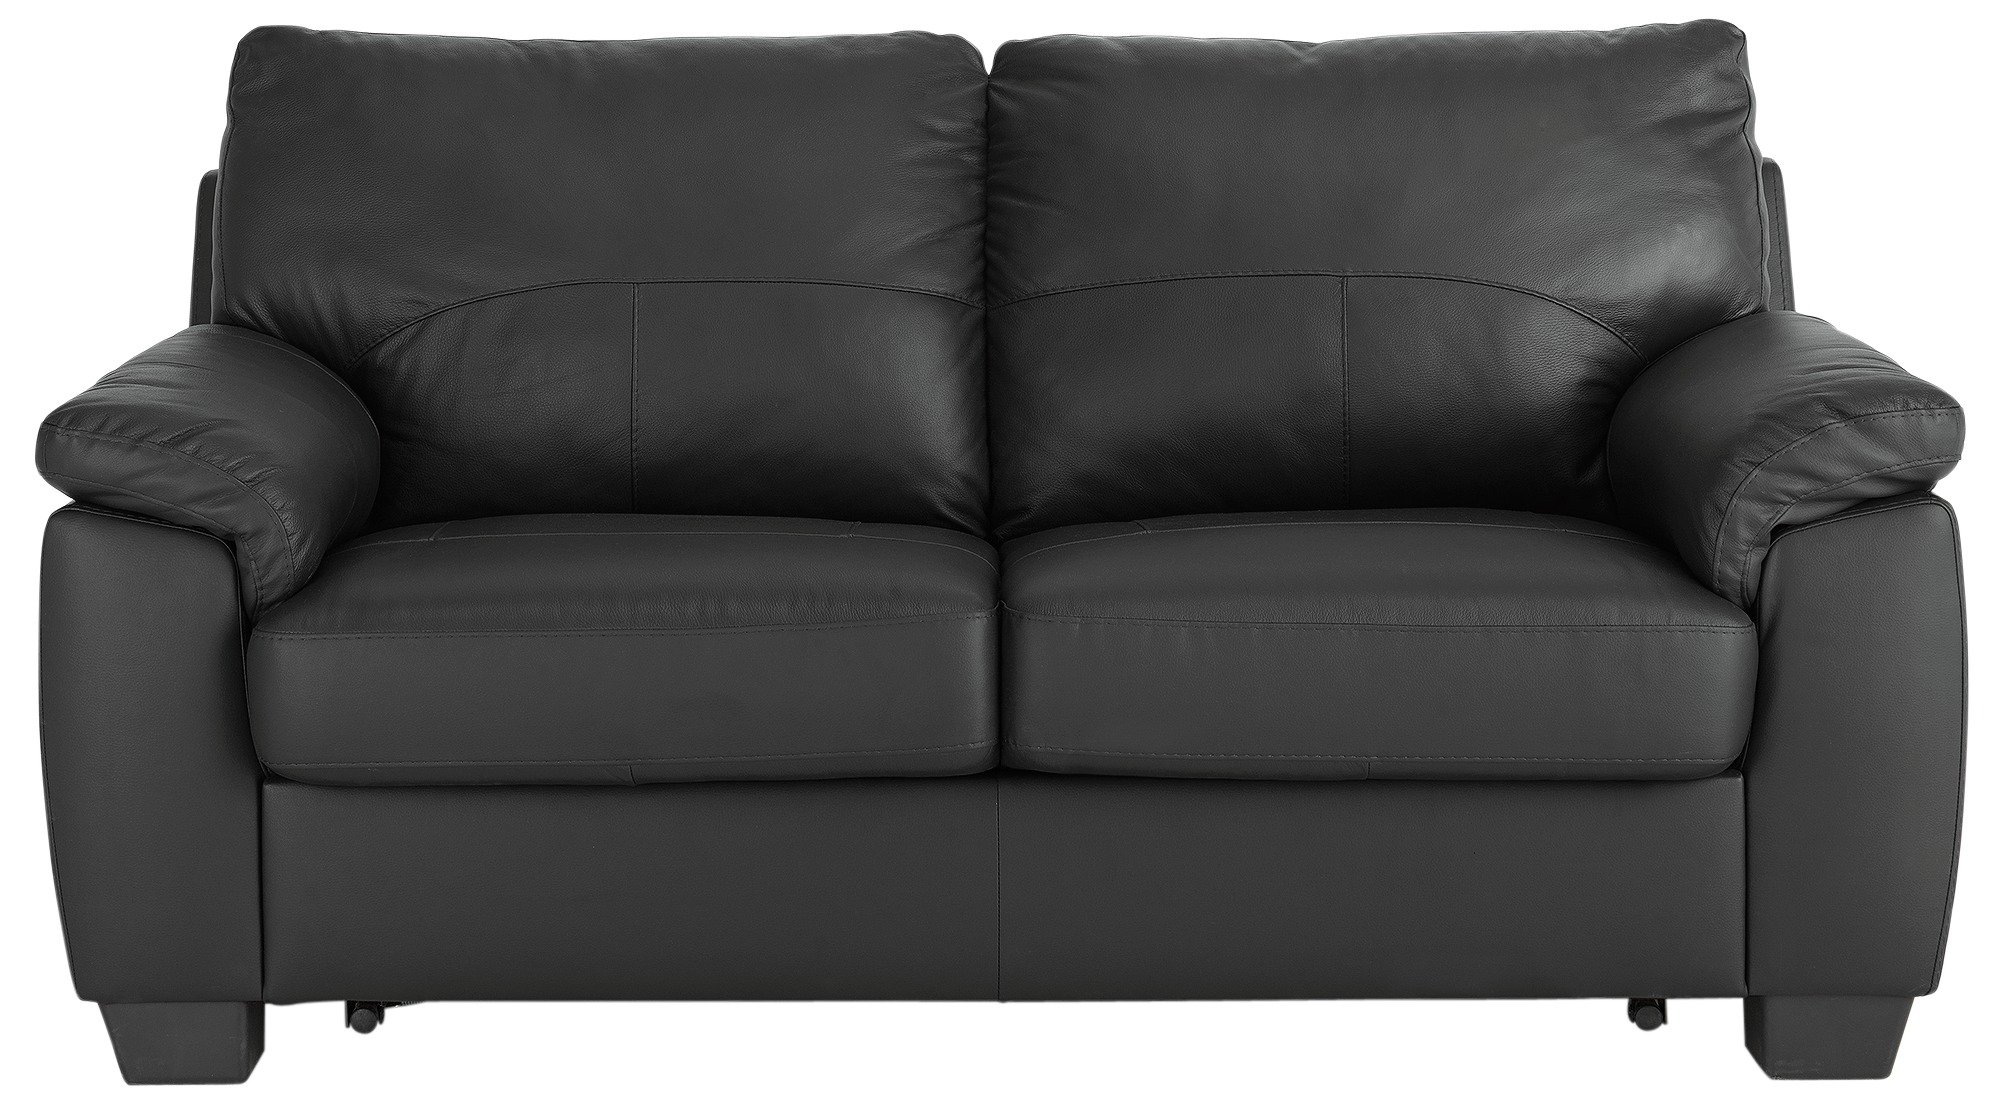 Argos Home Logan 2 Seater Faux Leather Sofa Bed - Black